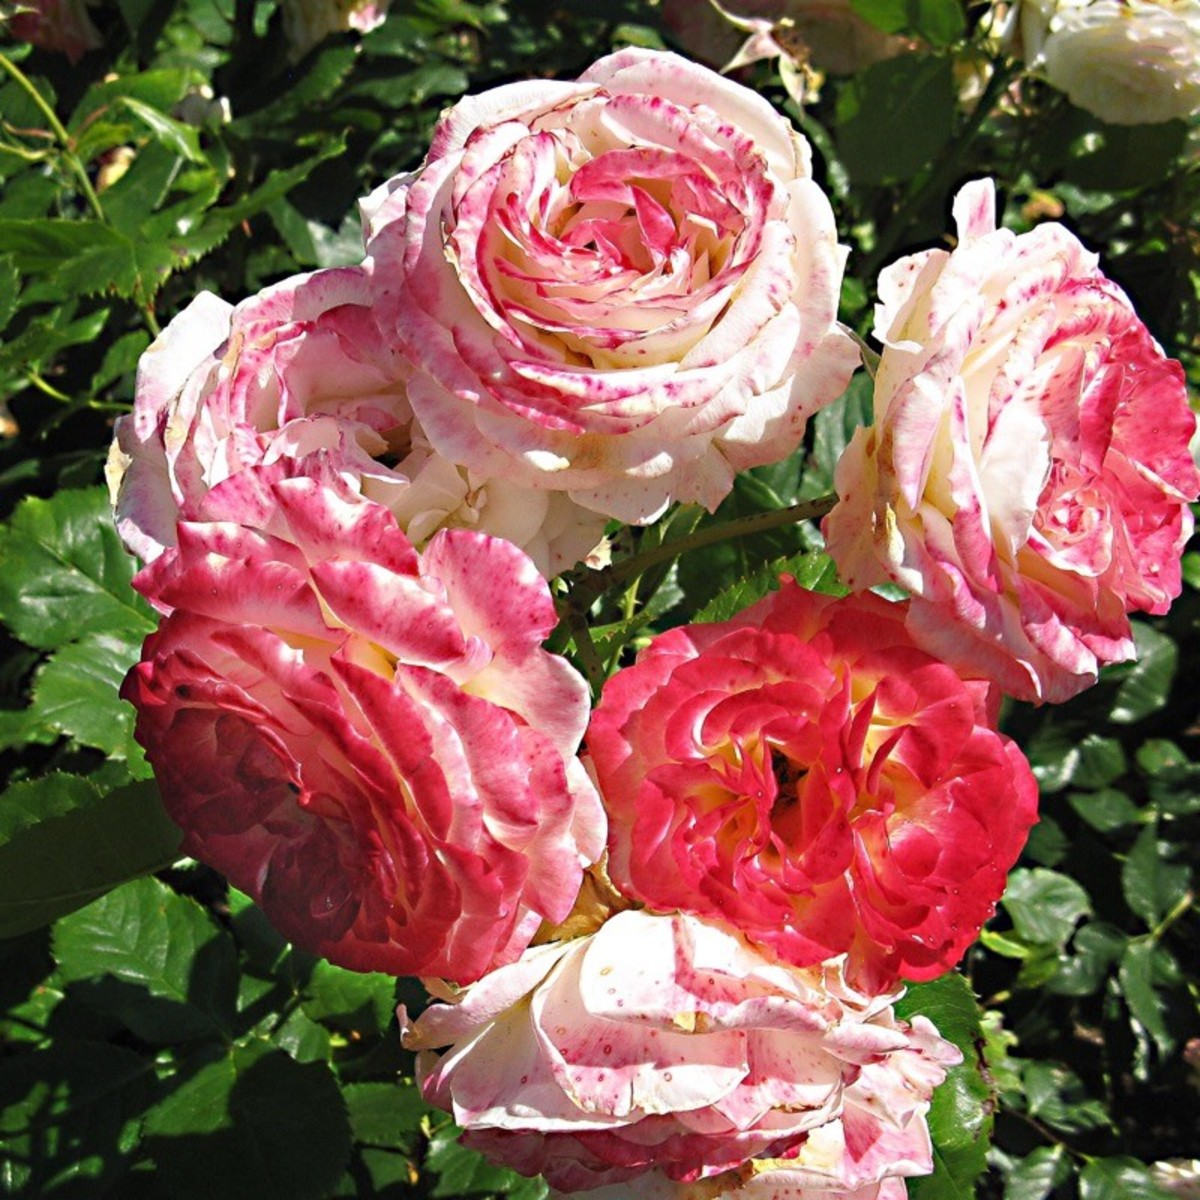 Roses growing in a rose garden